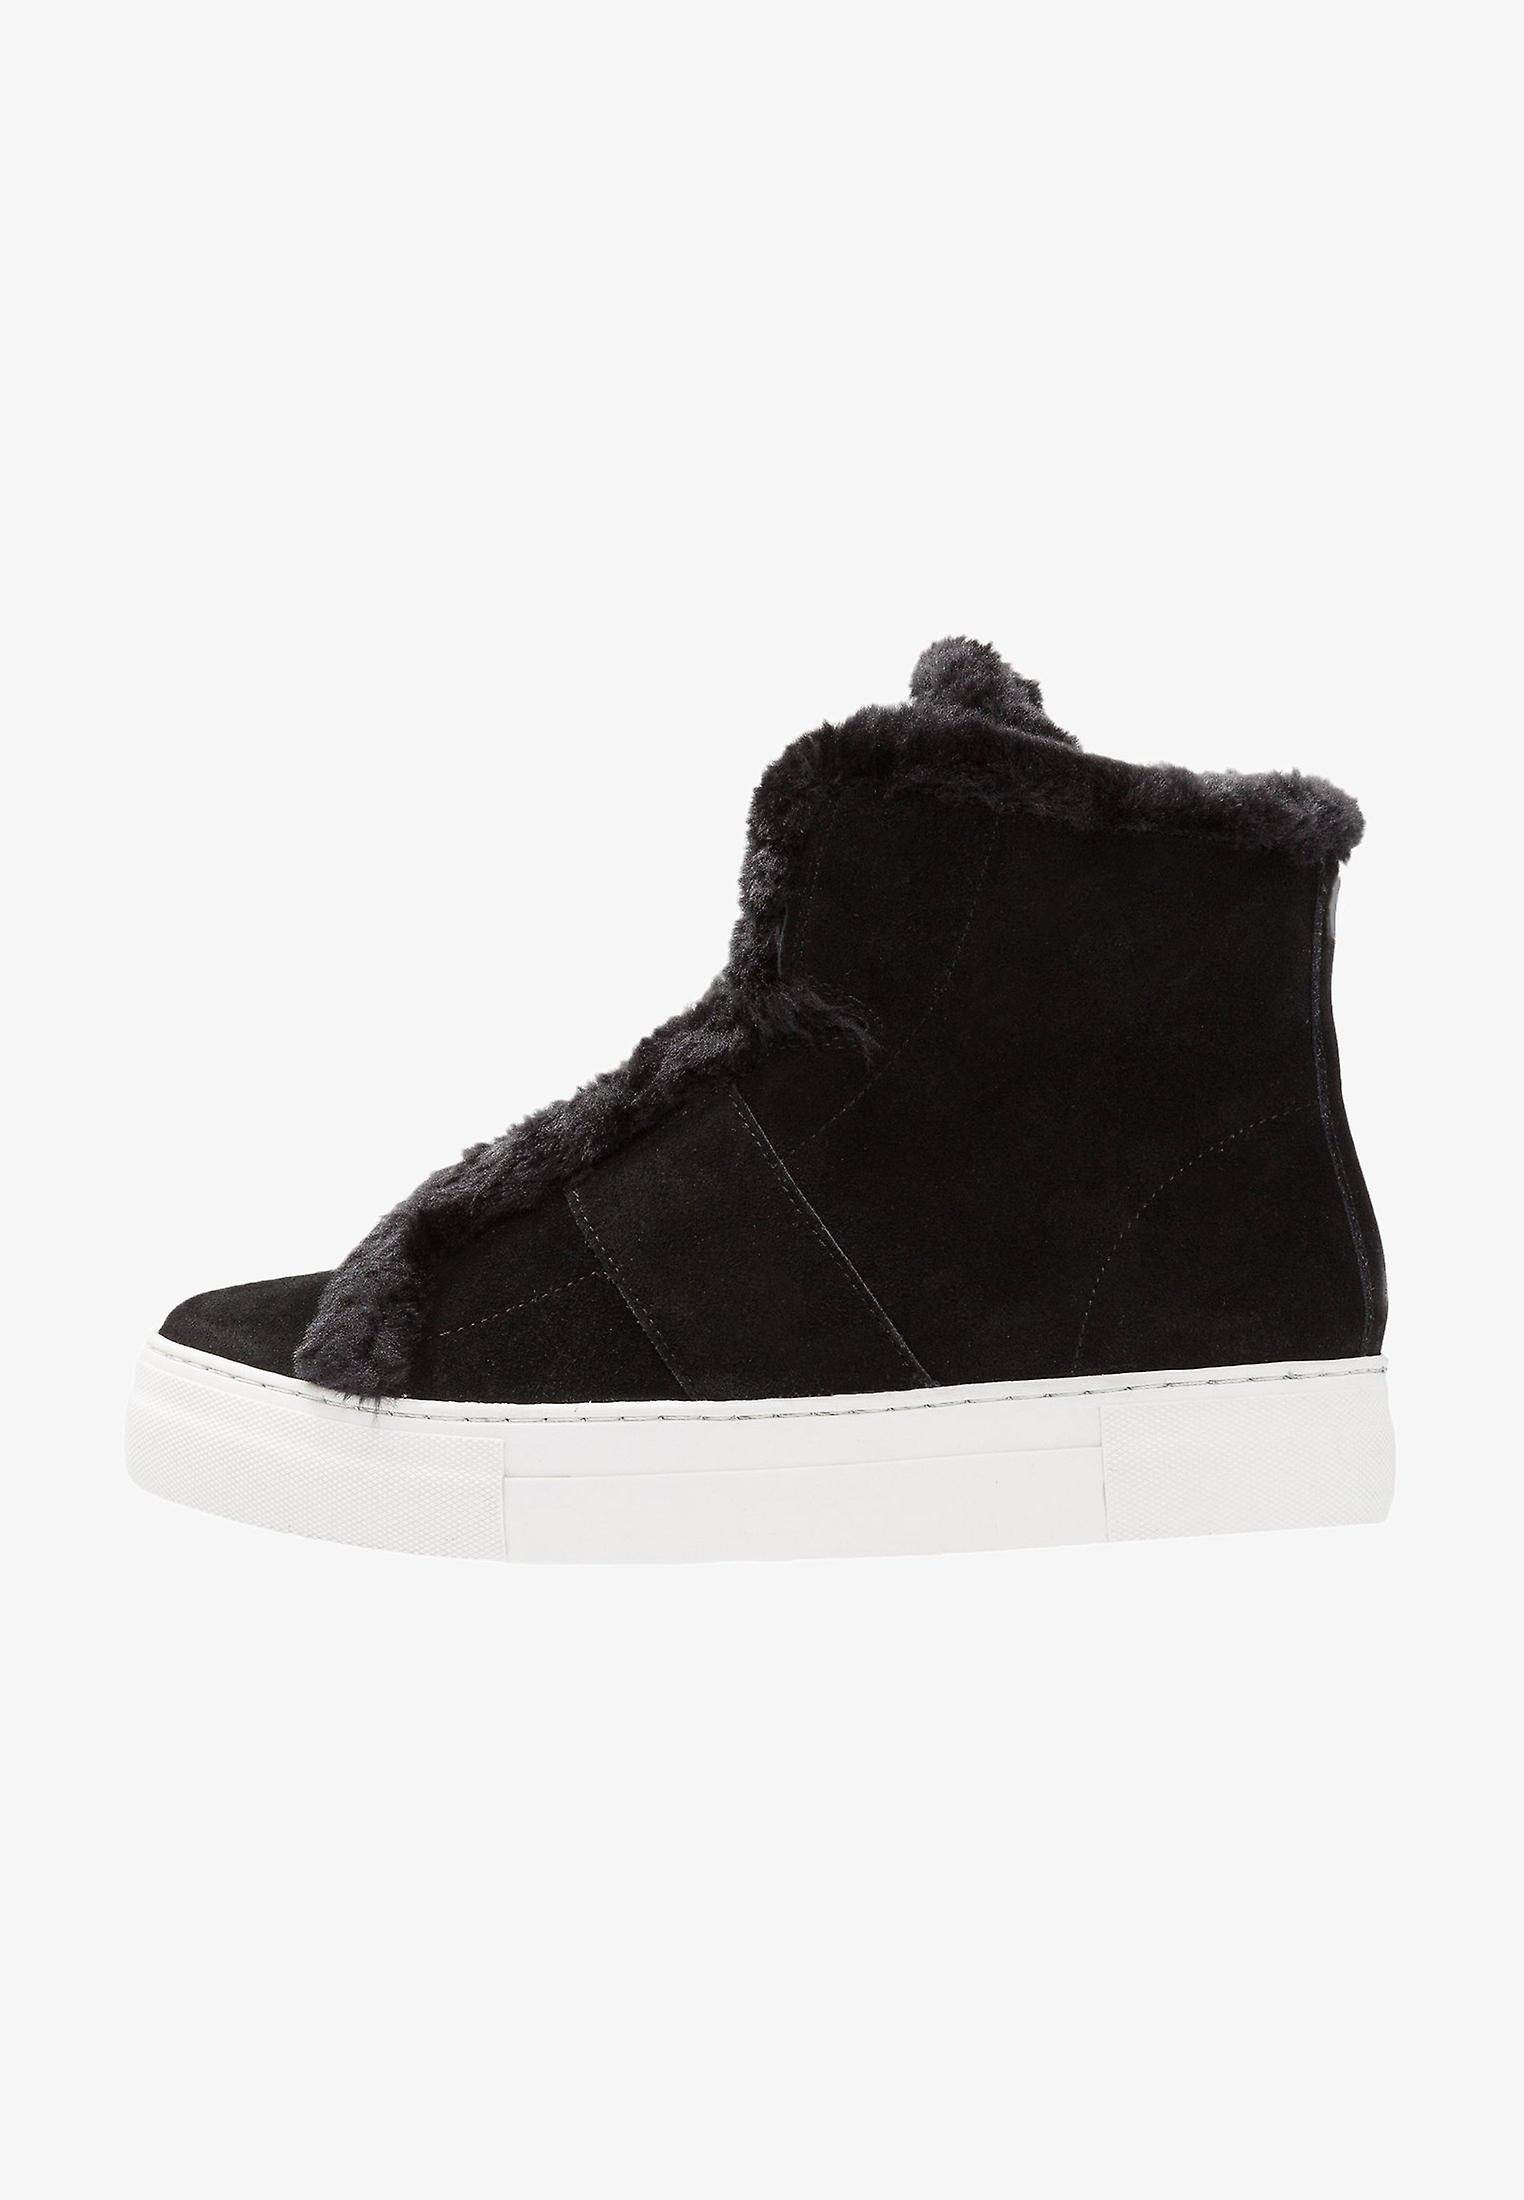 DKNY Damskie Mason-High Top SNE Skóra Hight Top Pull On Fashion Sneakers 96hPG